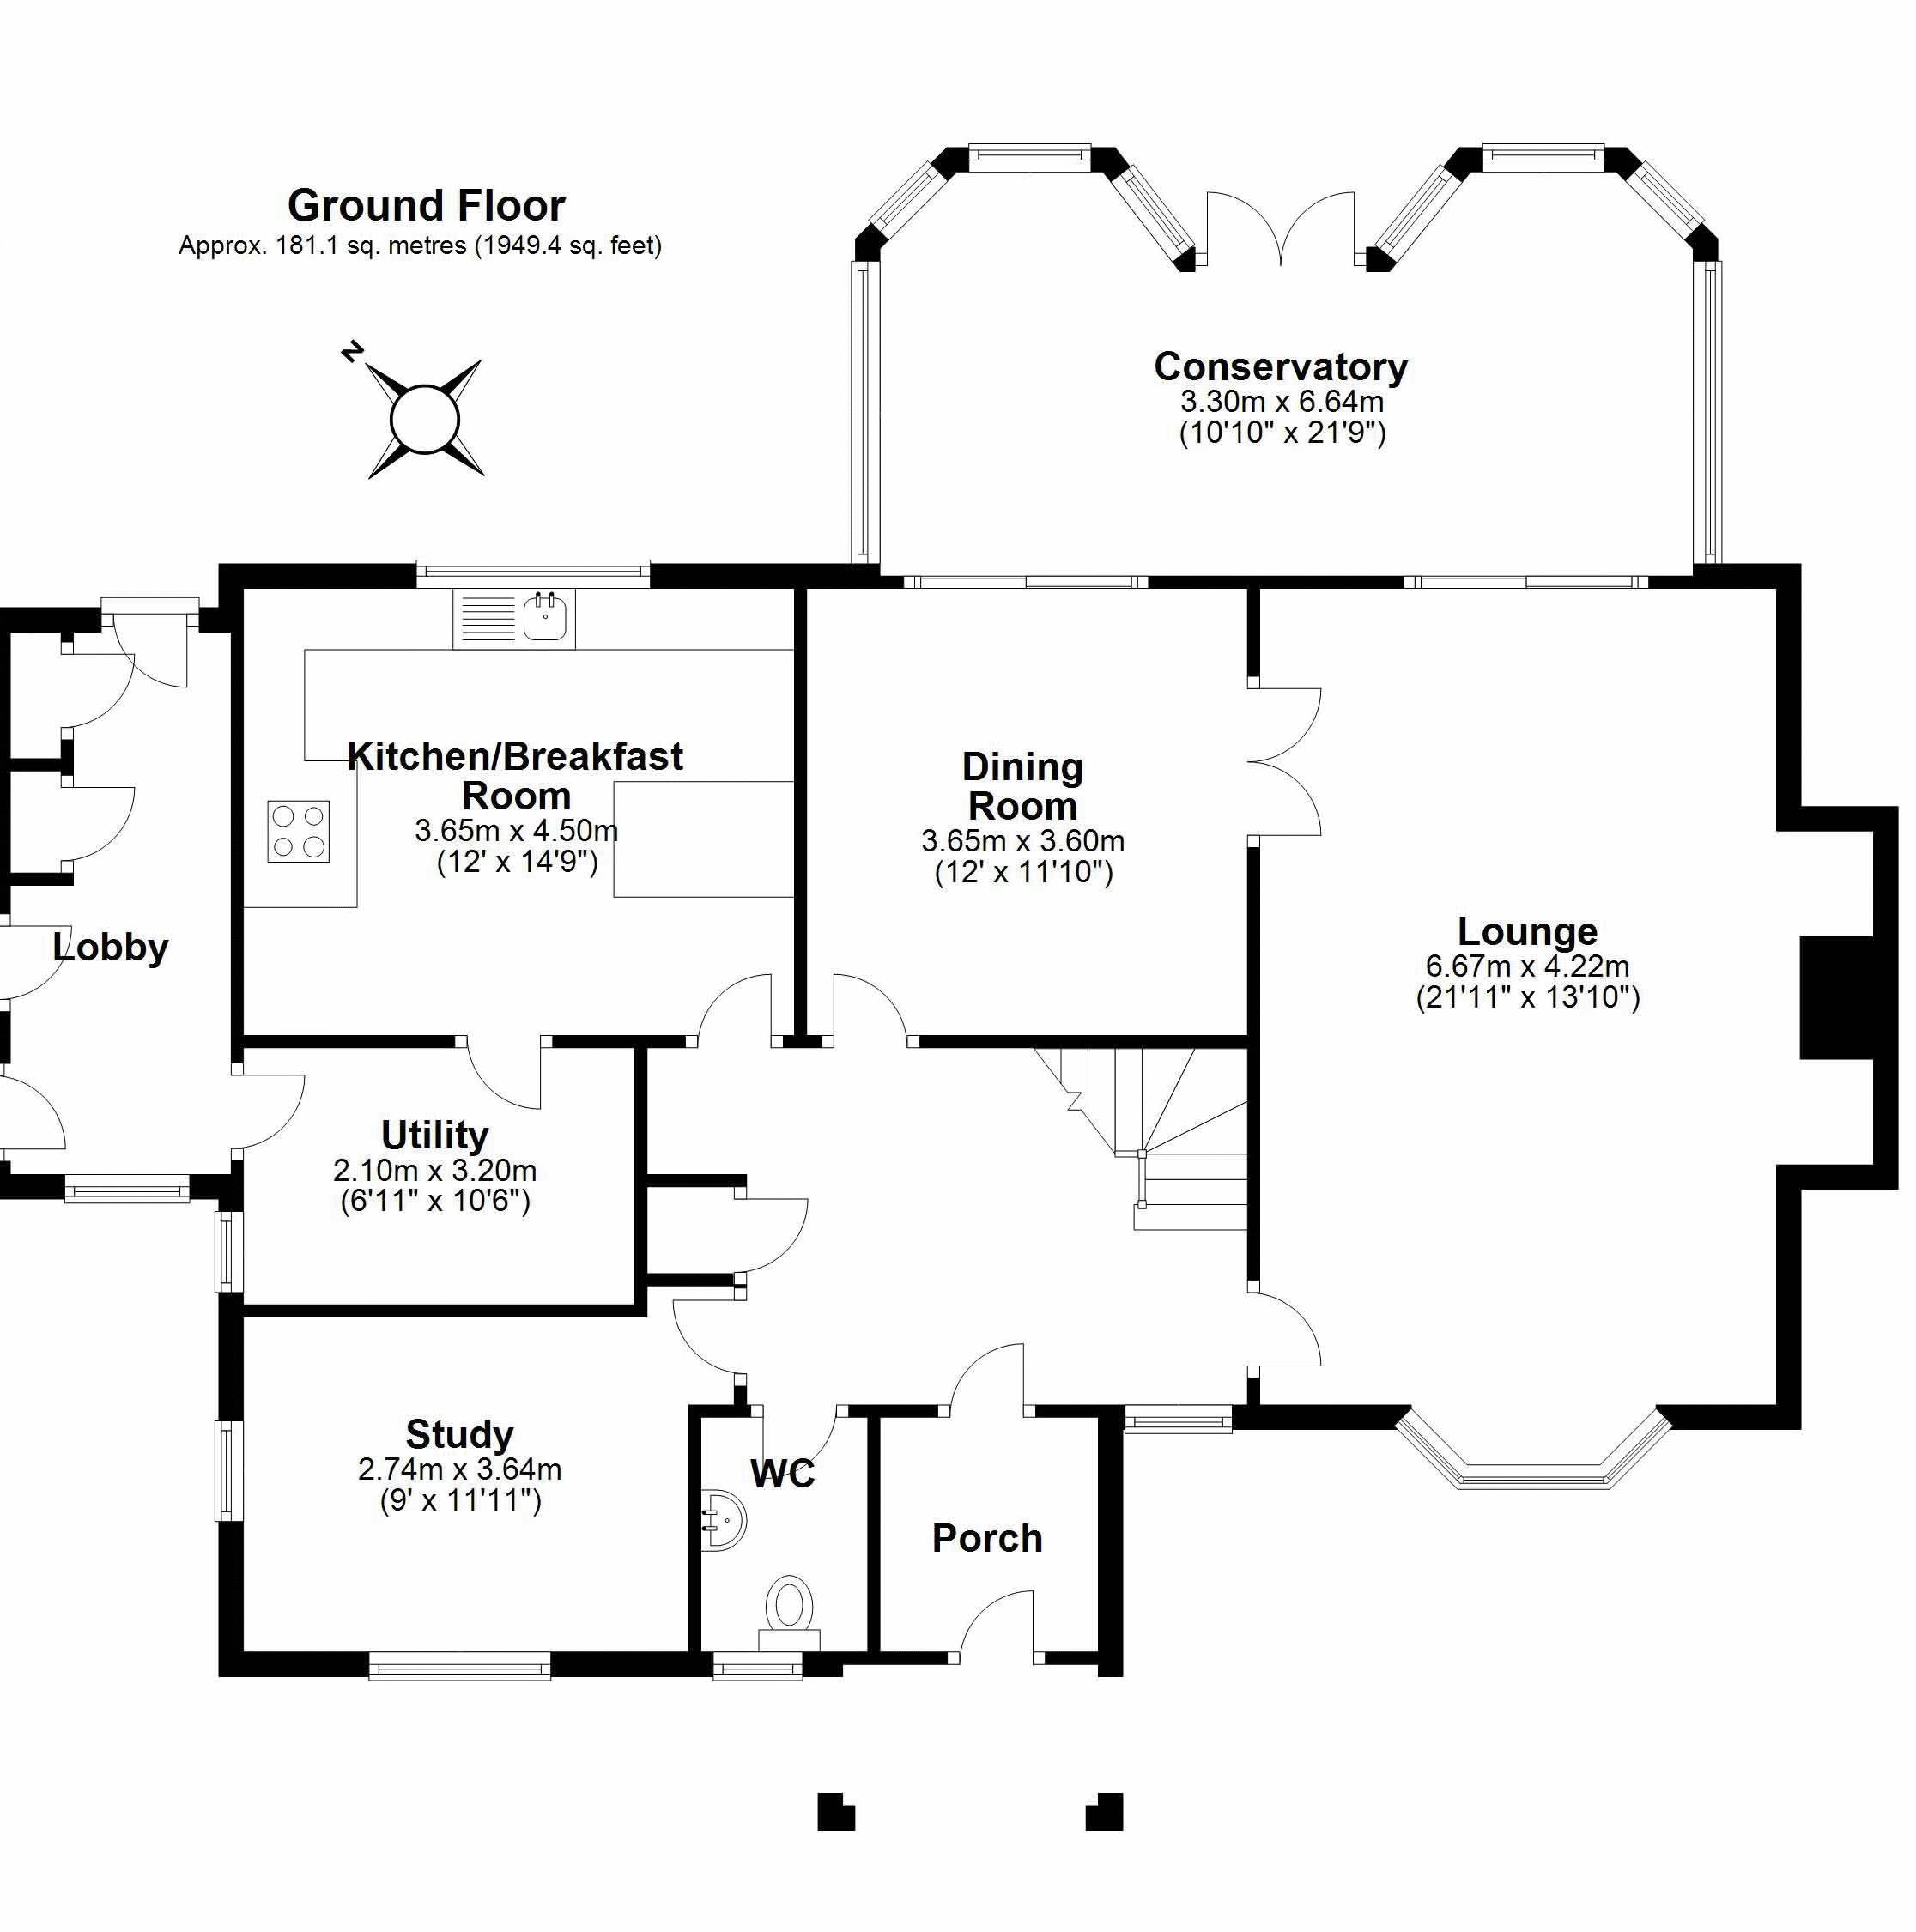 Main House Ground Floor Plan